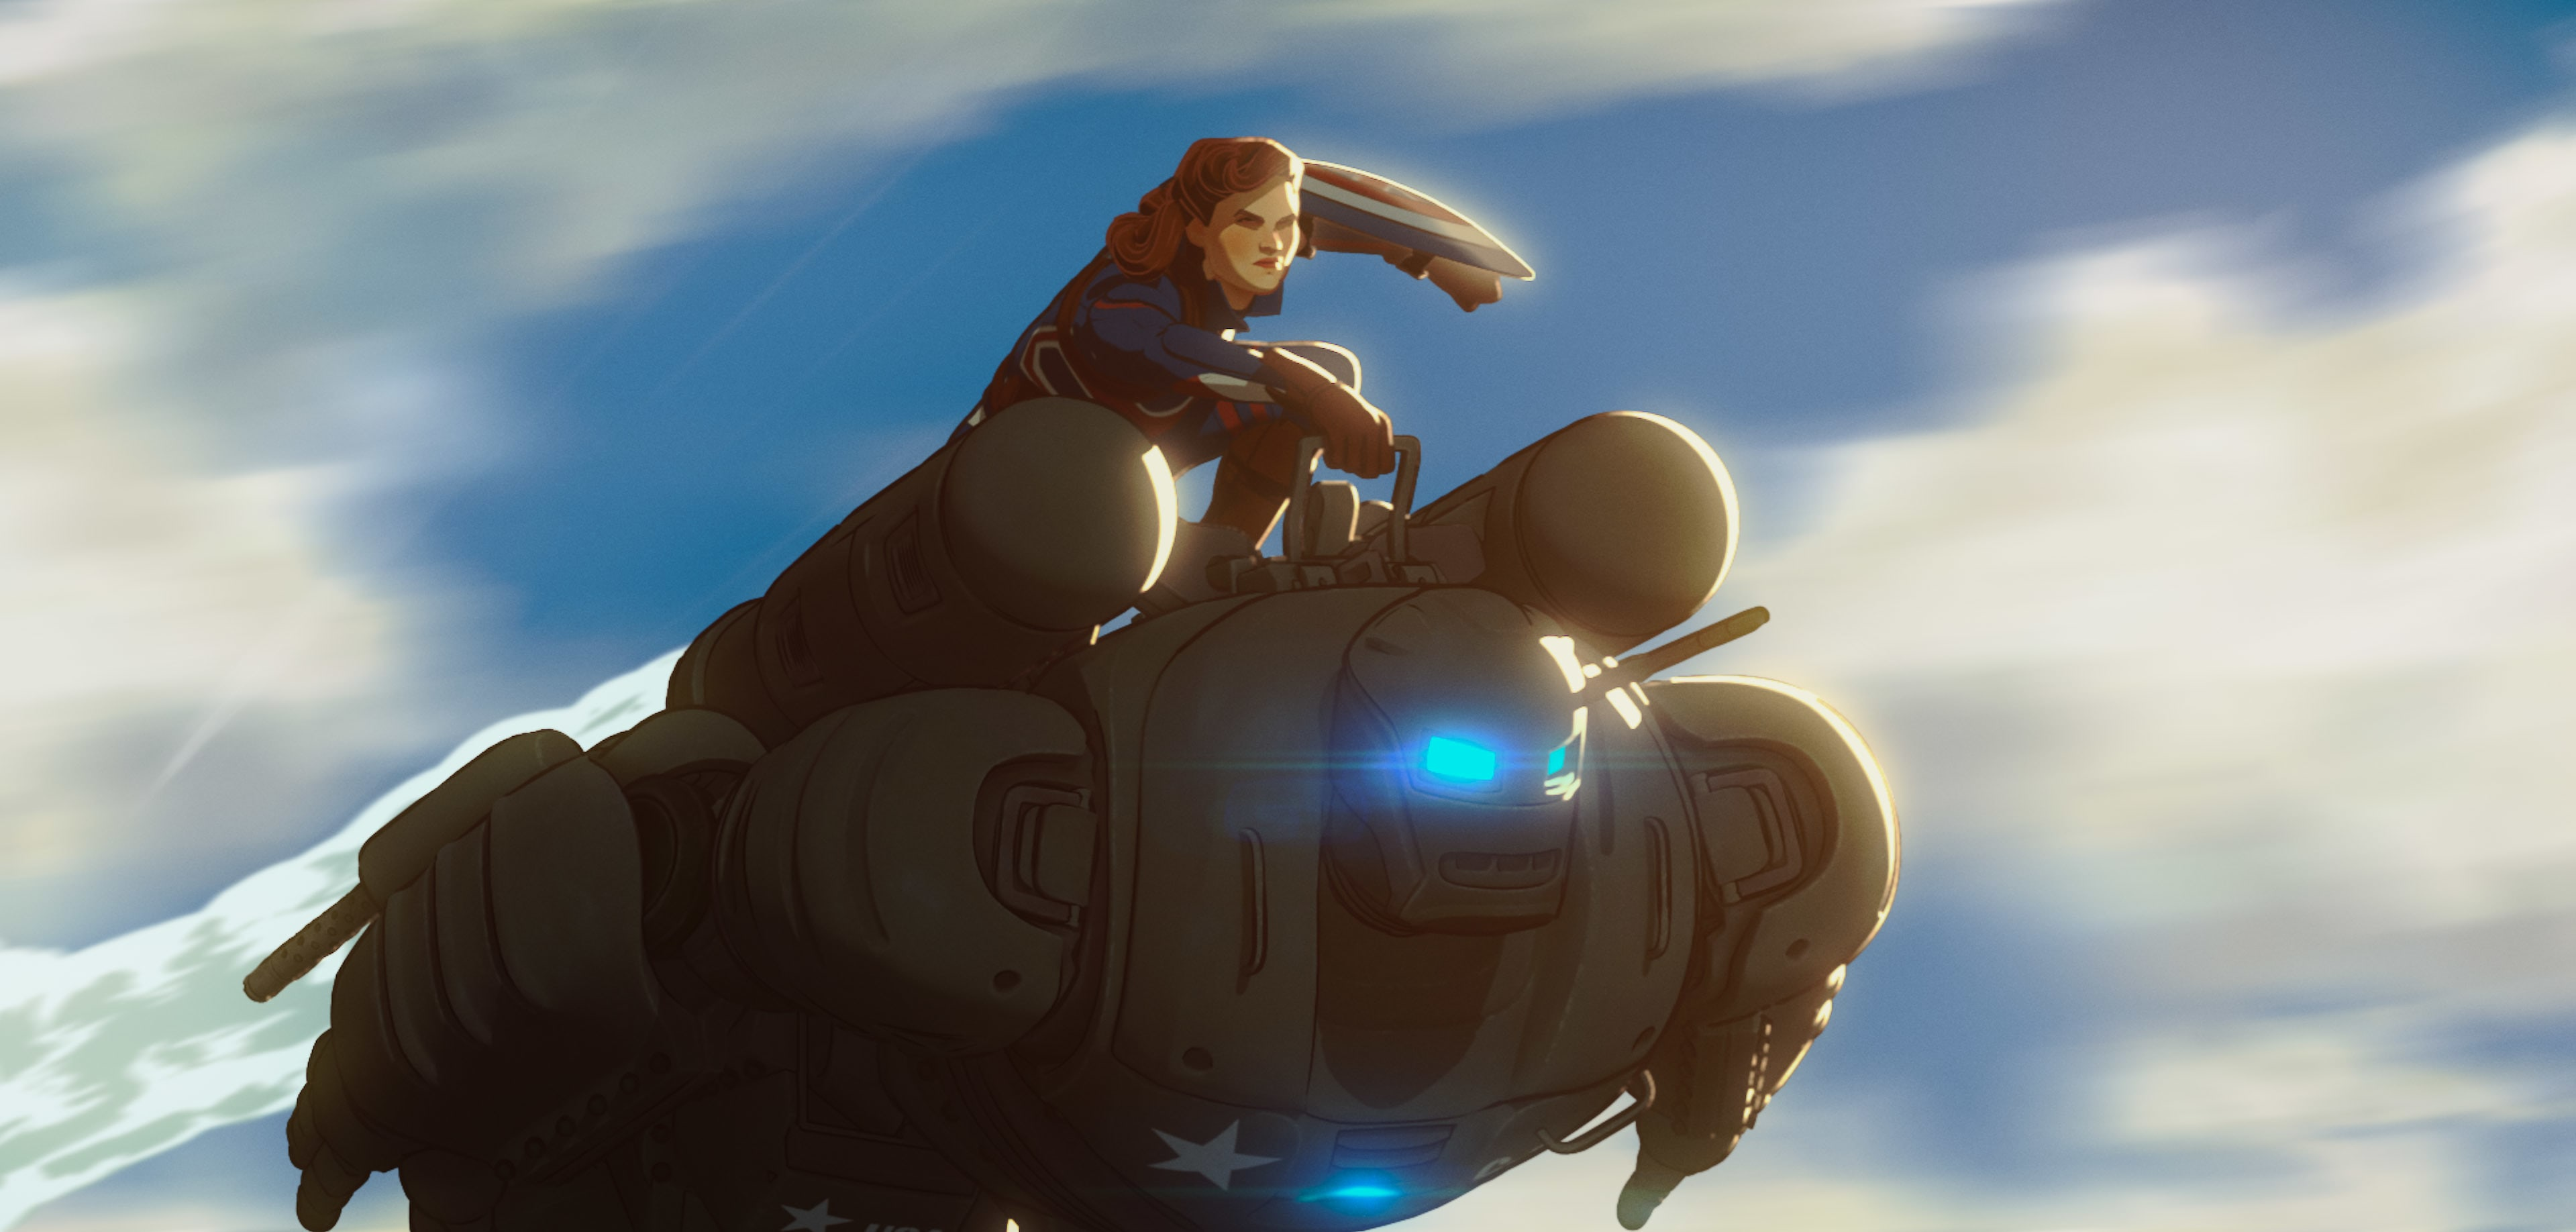 Captain Carter/Peggy Carter and the Hydra Stomper in Marvel Studios' WHAT IF…? exclusively on Disney+. ©Marvel Studios 2021. All Rights Reserved.